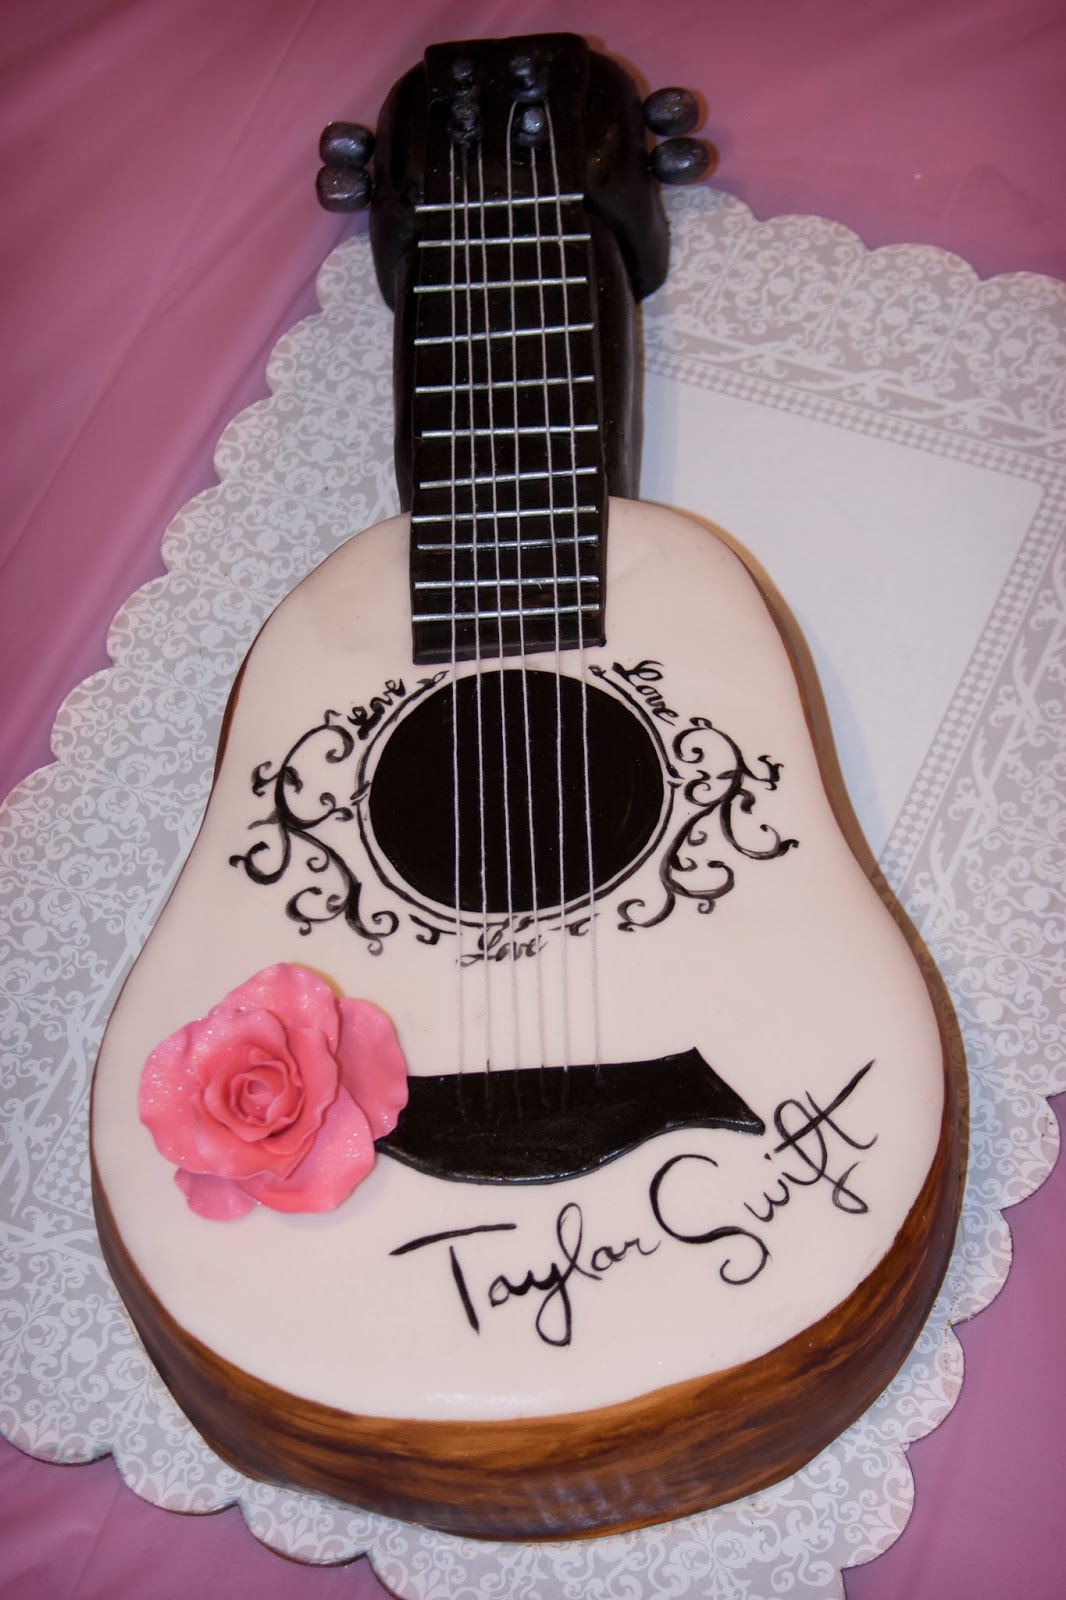 heathers sweet cakes   u0026quot taylor swift guitar u0026quot  cake